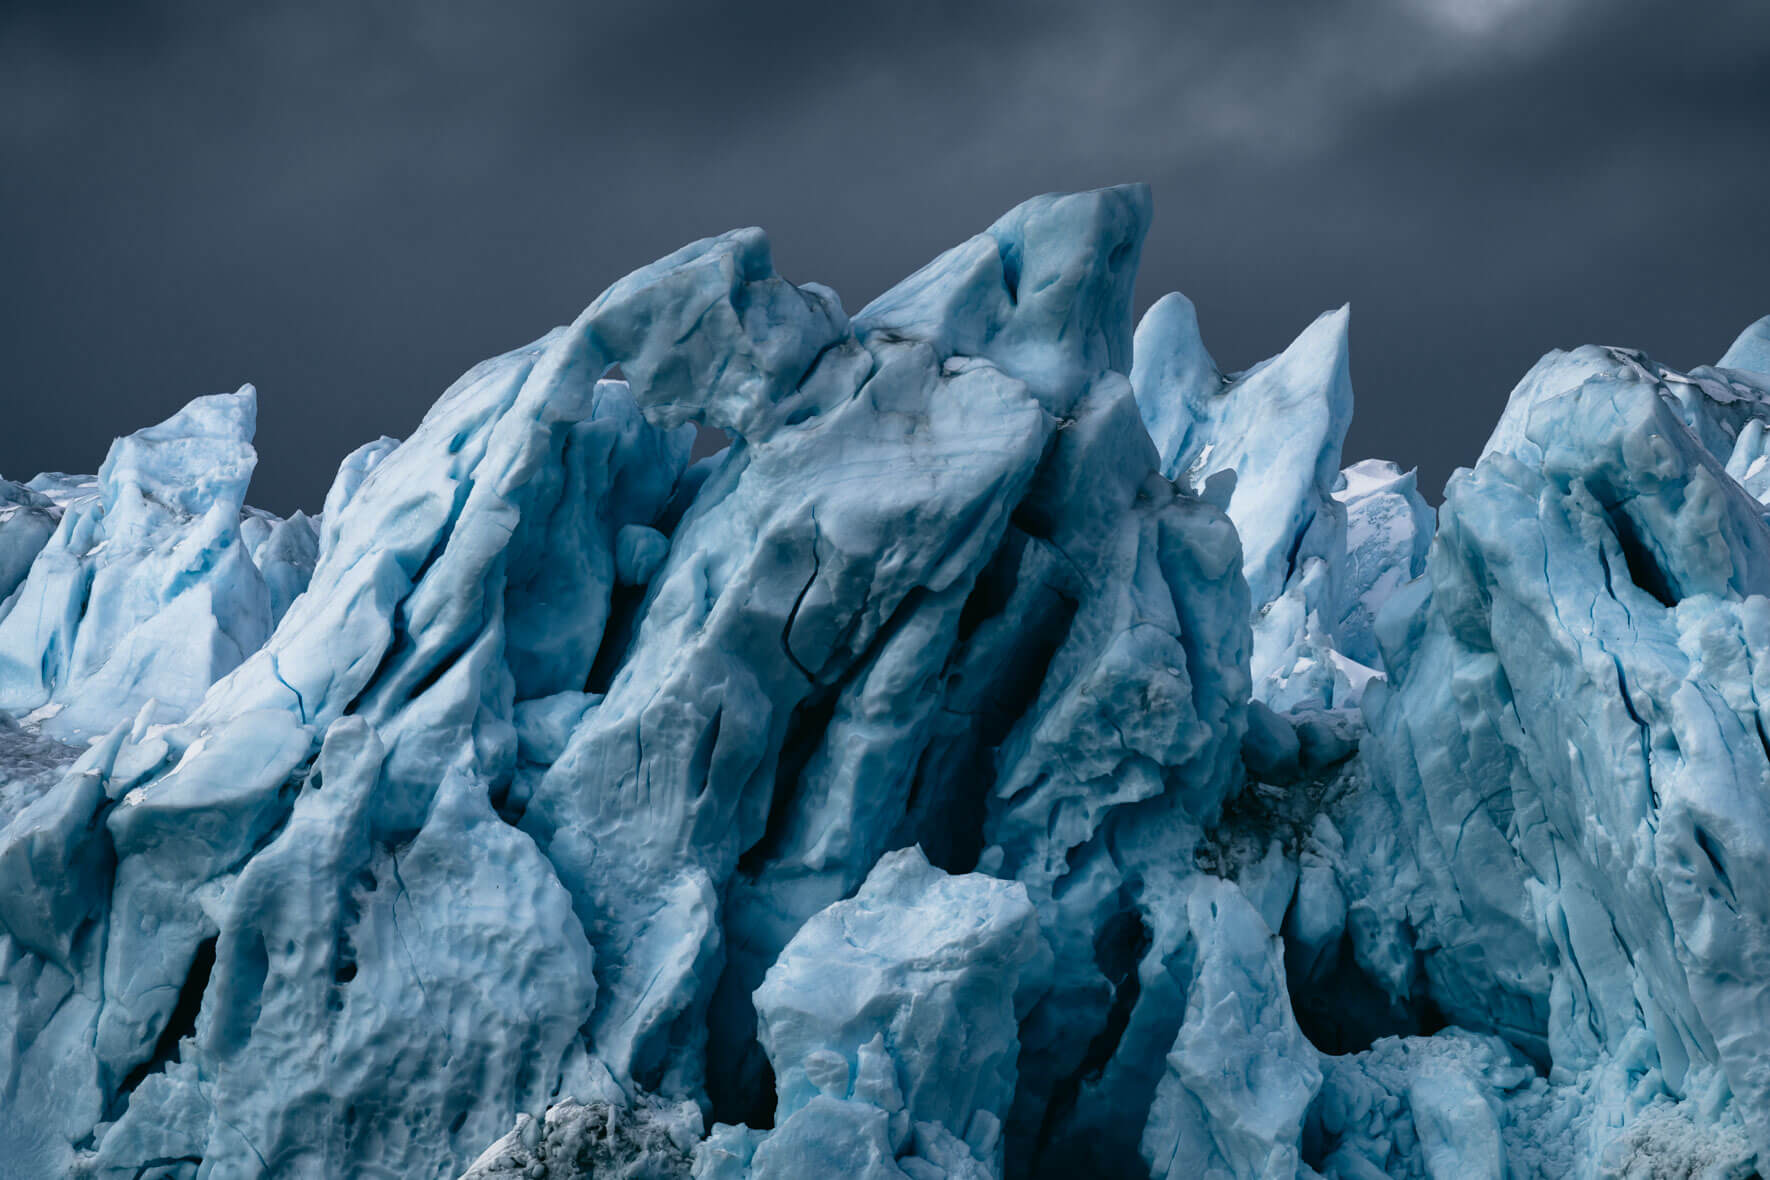 Abstract icebergs in the Ilulissat Icefjord in Greenland